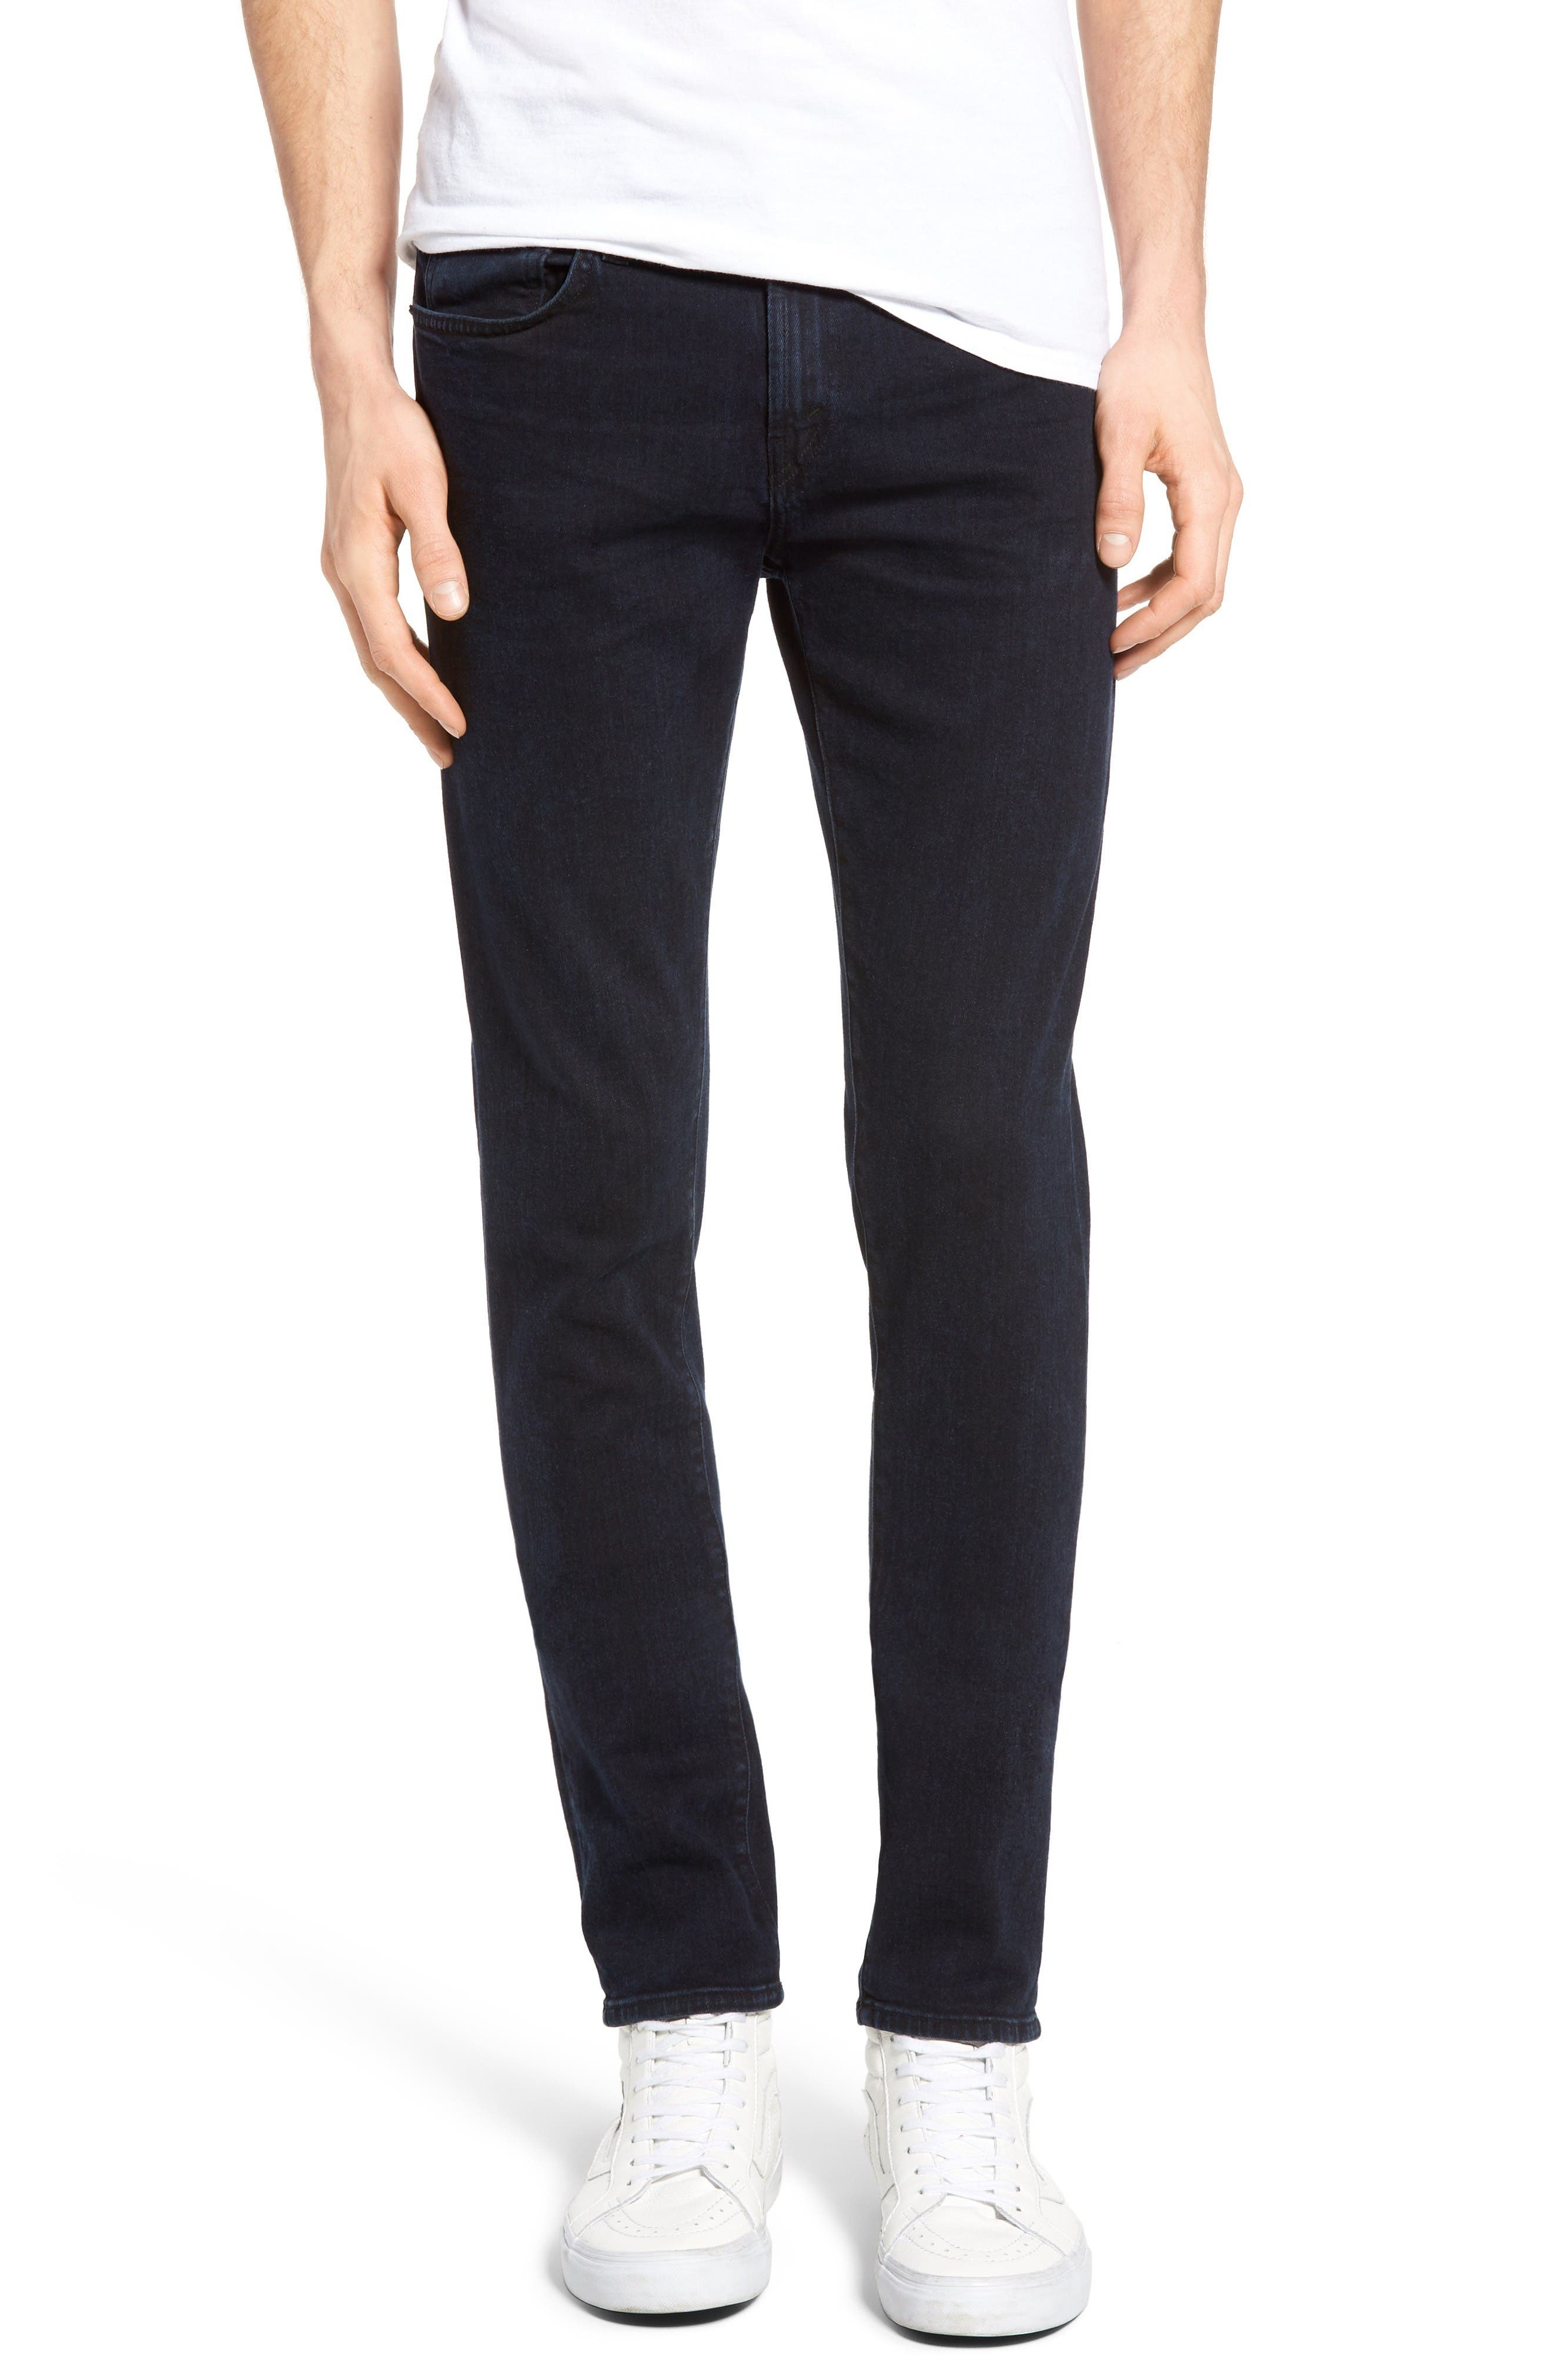 Alternate Image 1 Selected - J Brand Skinny Fit Jeans (Caput)